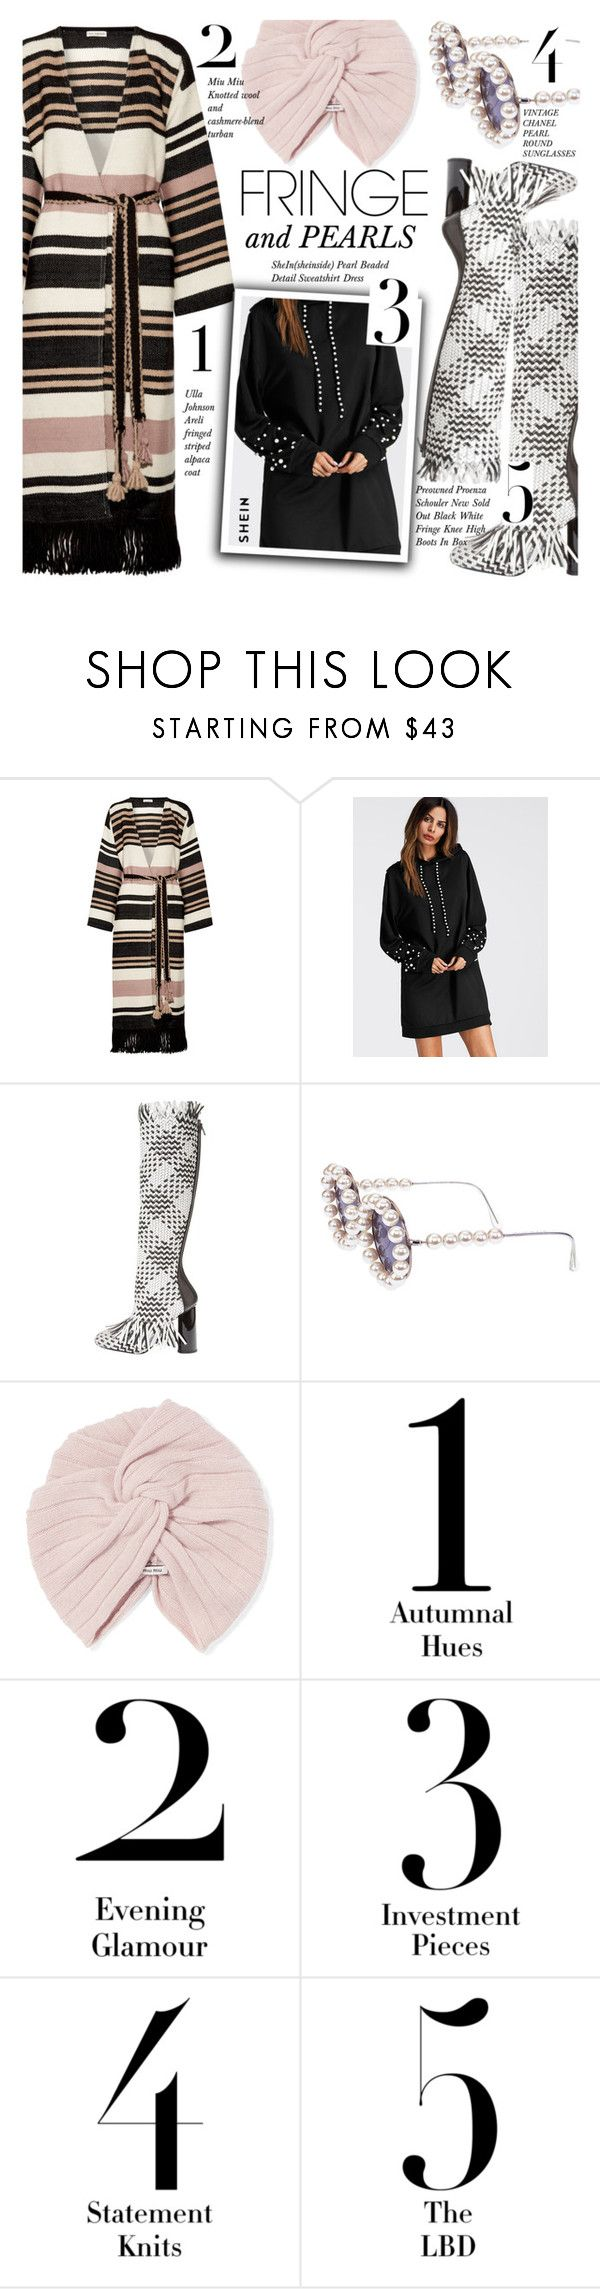 """""""WIN $30 ! Shimmy Shimmy: Fringe"""" by merrygorounds ❤ liked on Polyvore featuring Ulla Johnson, Proenza Schouler, Chanel, Miu Miu, fringe, pearls, polyvoreeditorial and shein"""